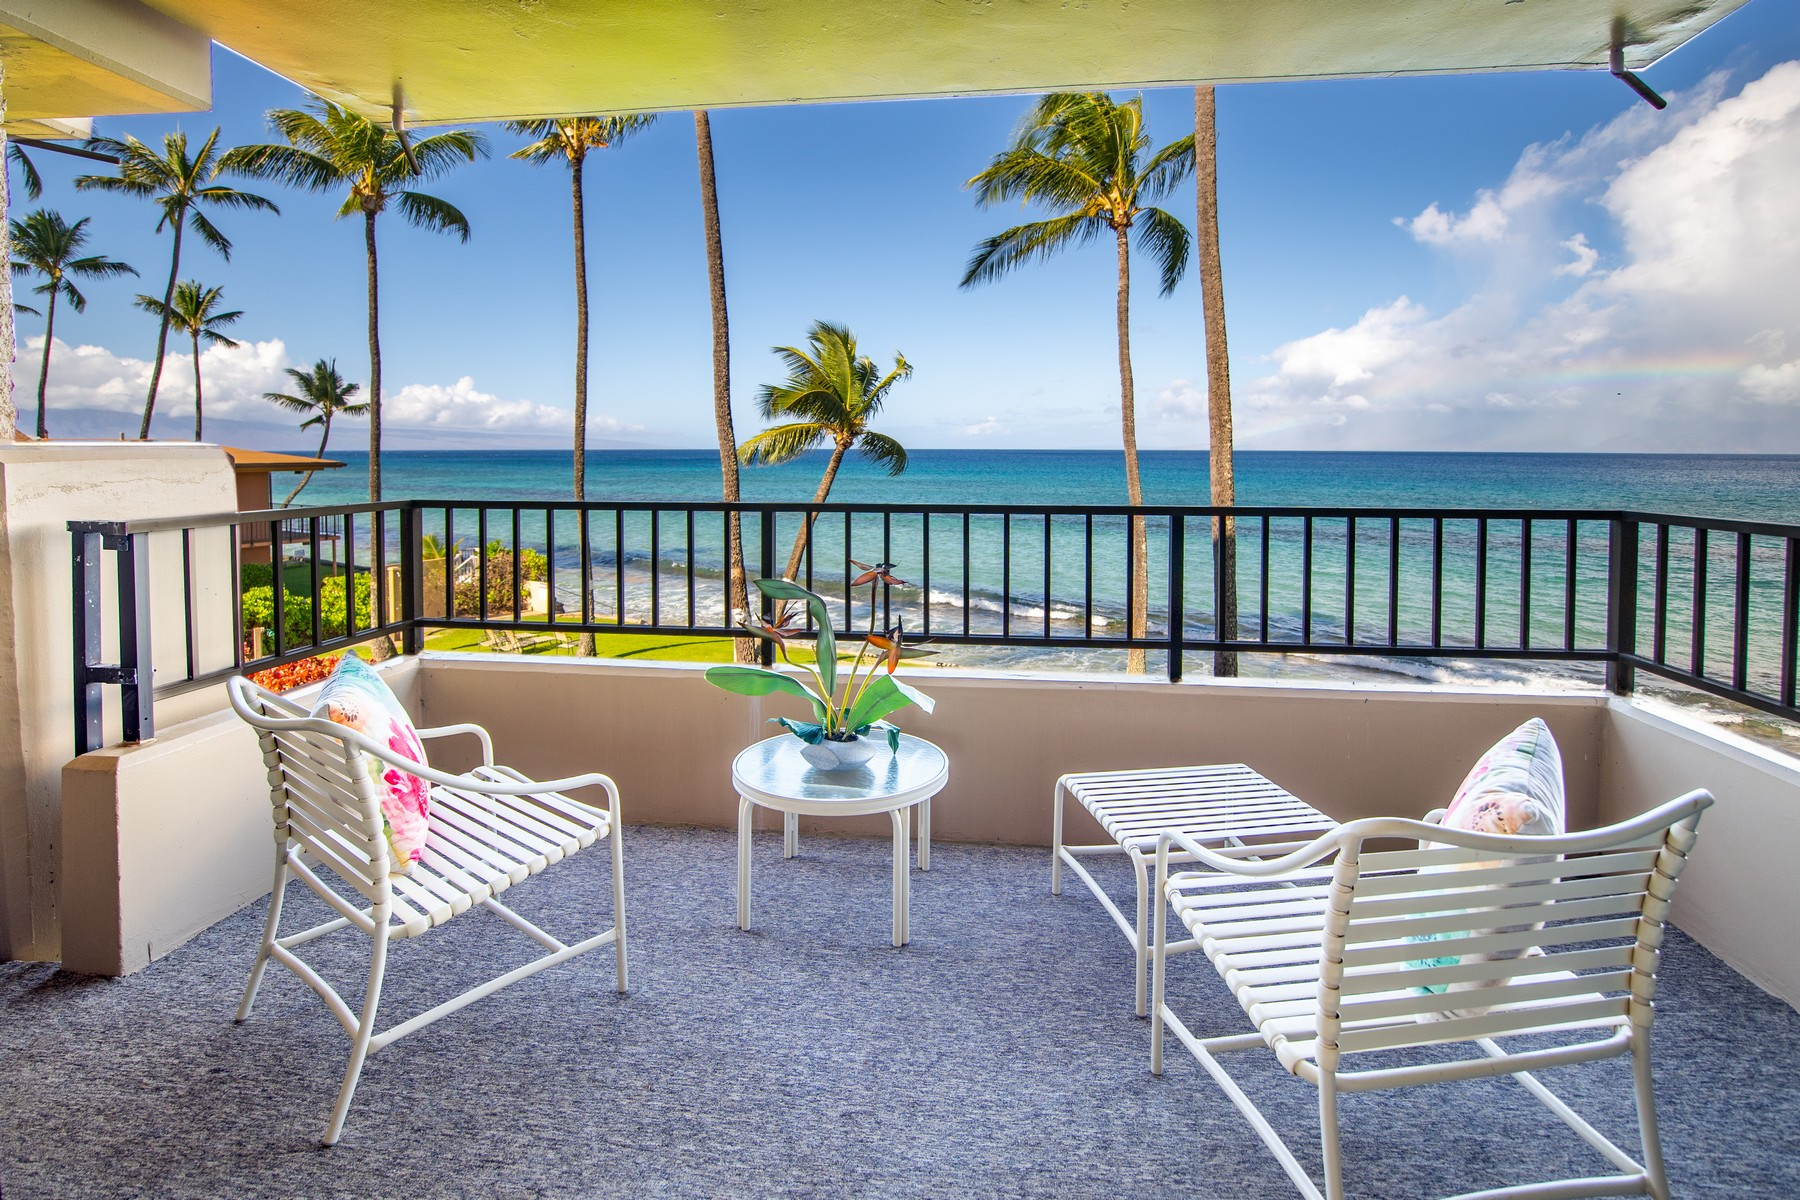 Condominiums 为 销售 在 Fabulous Direct Oceanfront 3601 Lower Honoapiilani Rd, Paki Maui #206 Honokowai, 夏威夷 96761 美国